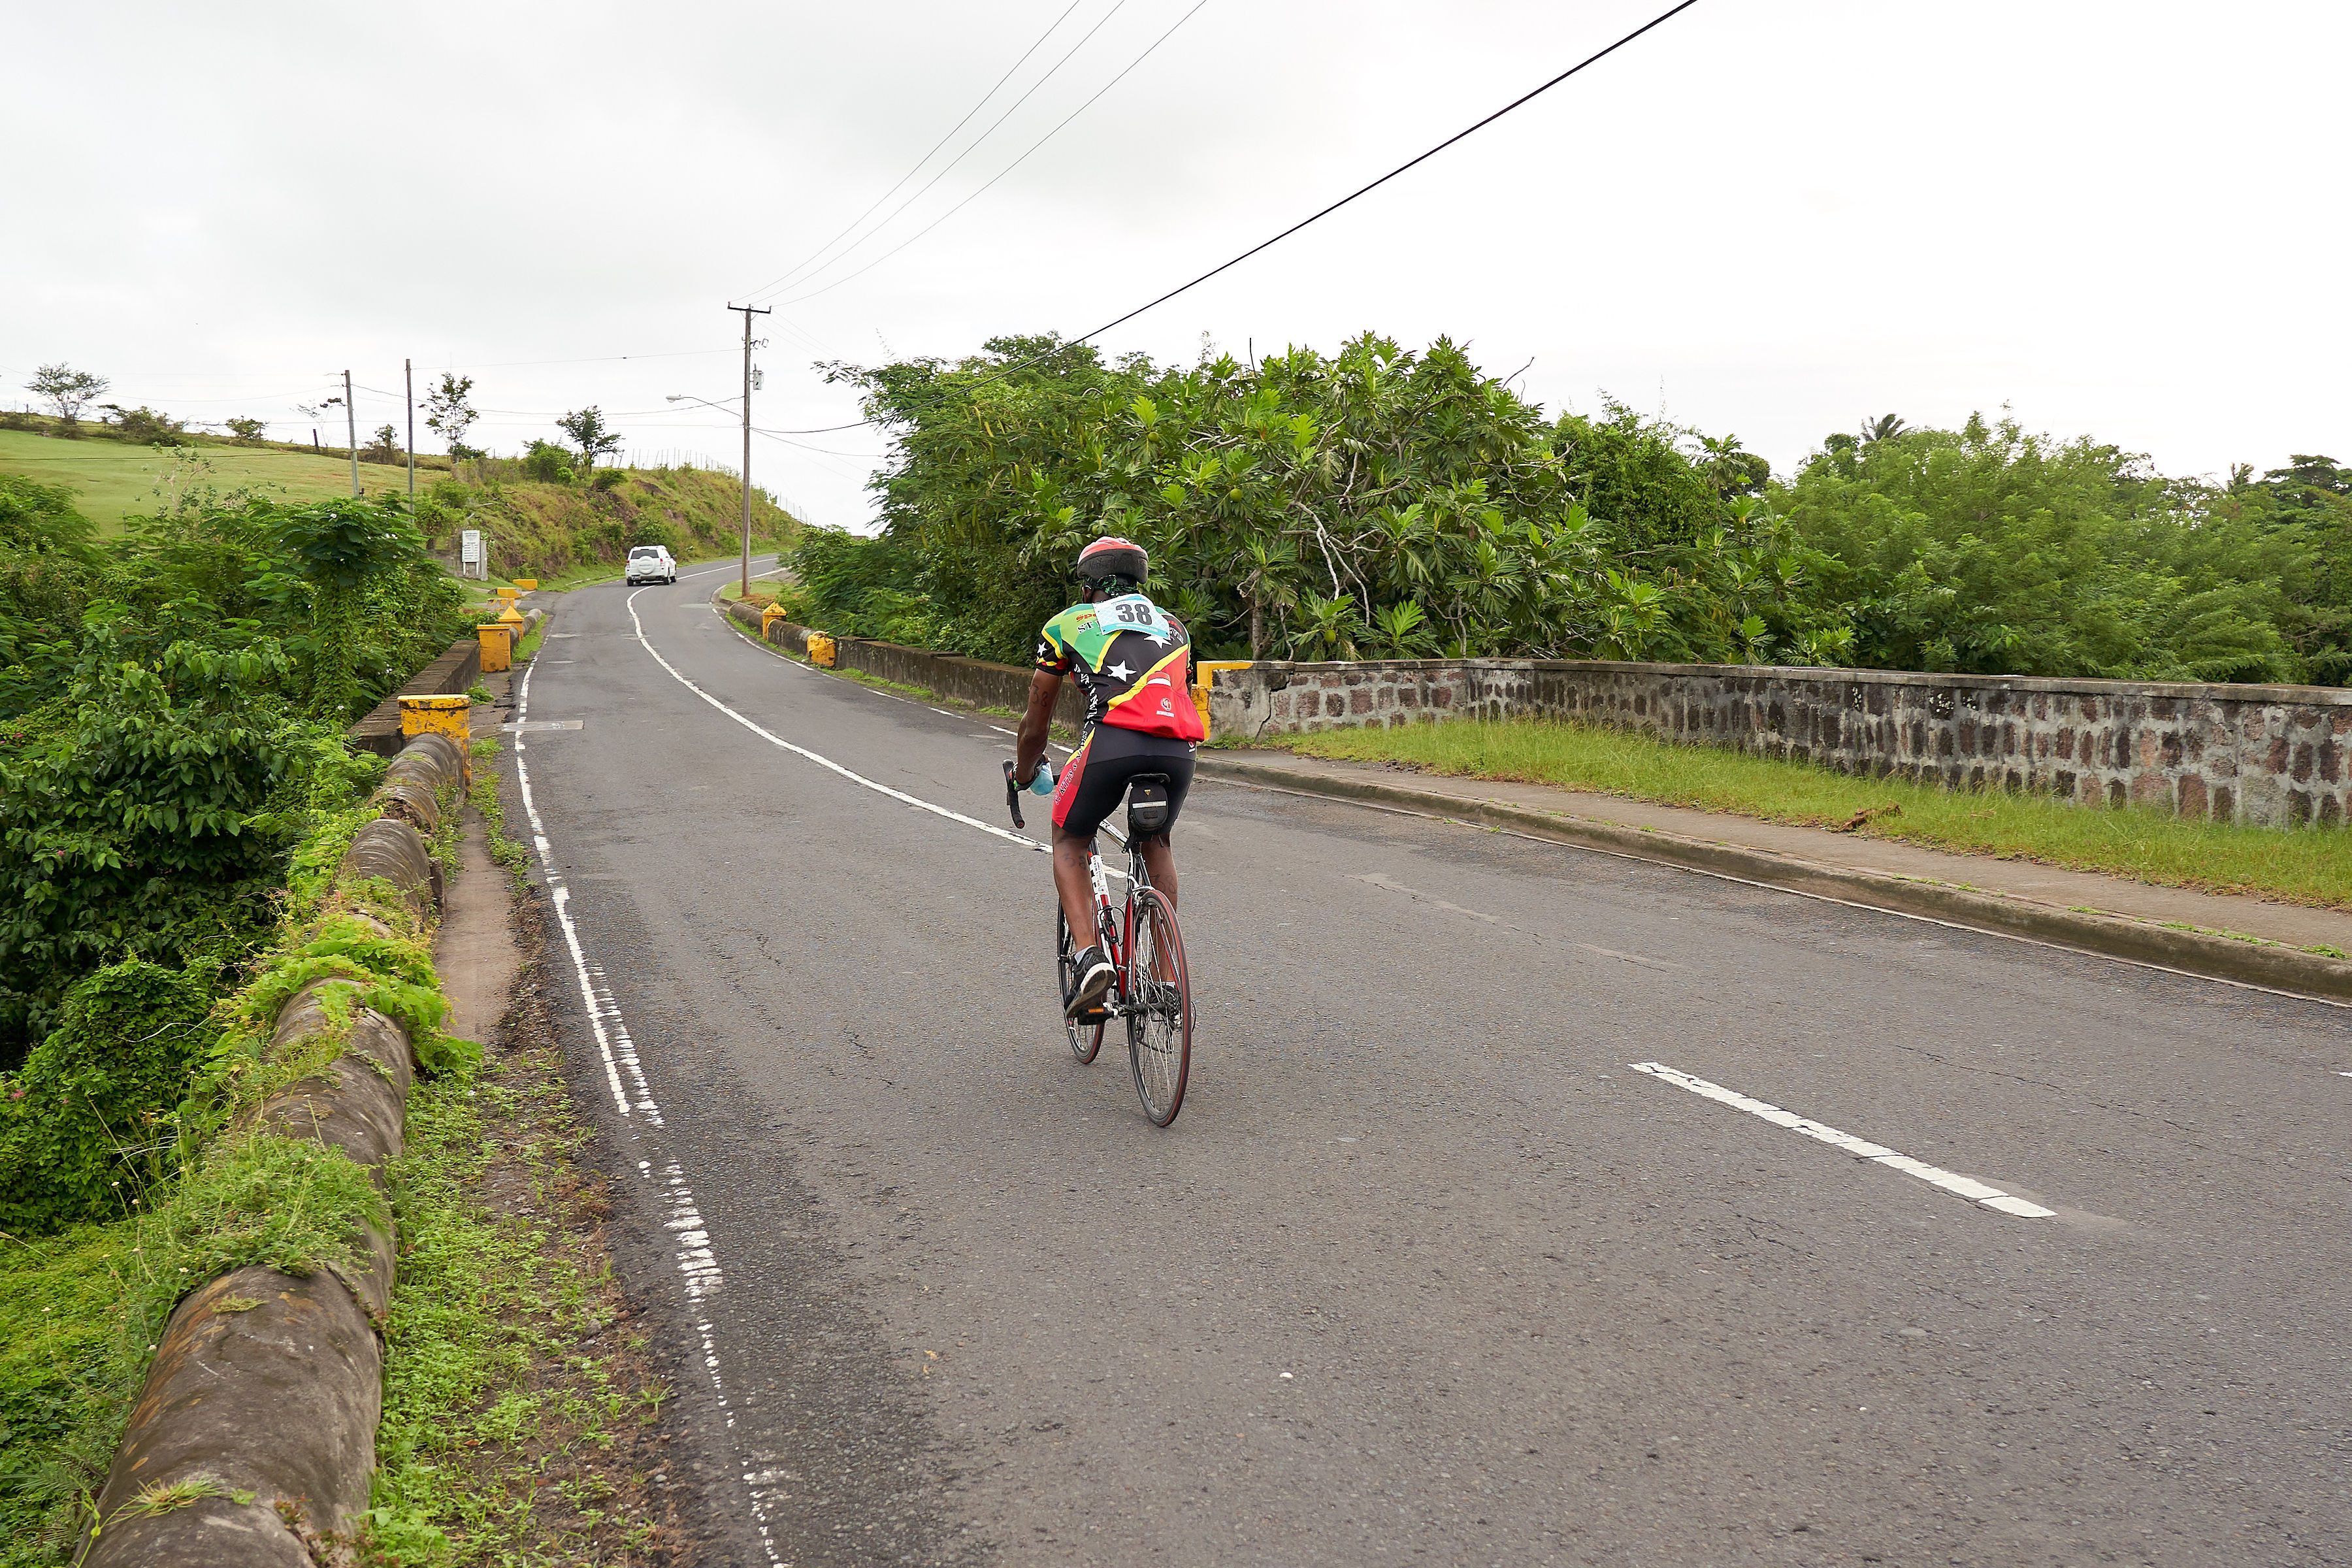 Competitors head out on the Nevis Triathlon bike course. Image: Ryan Delano